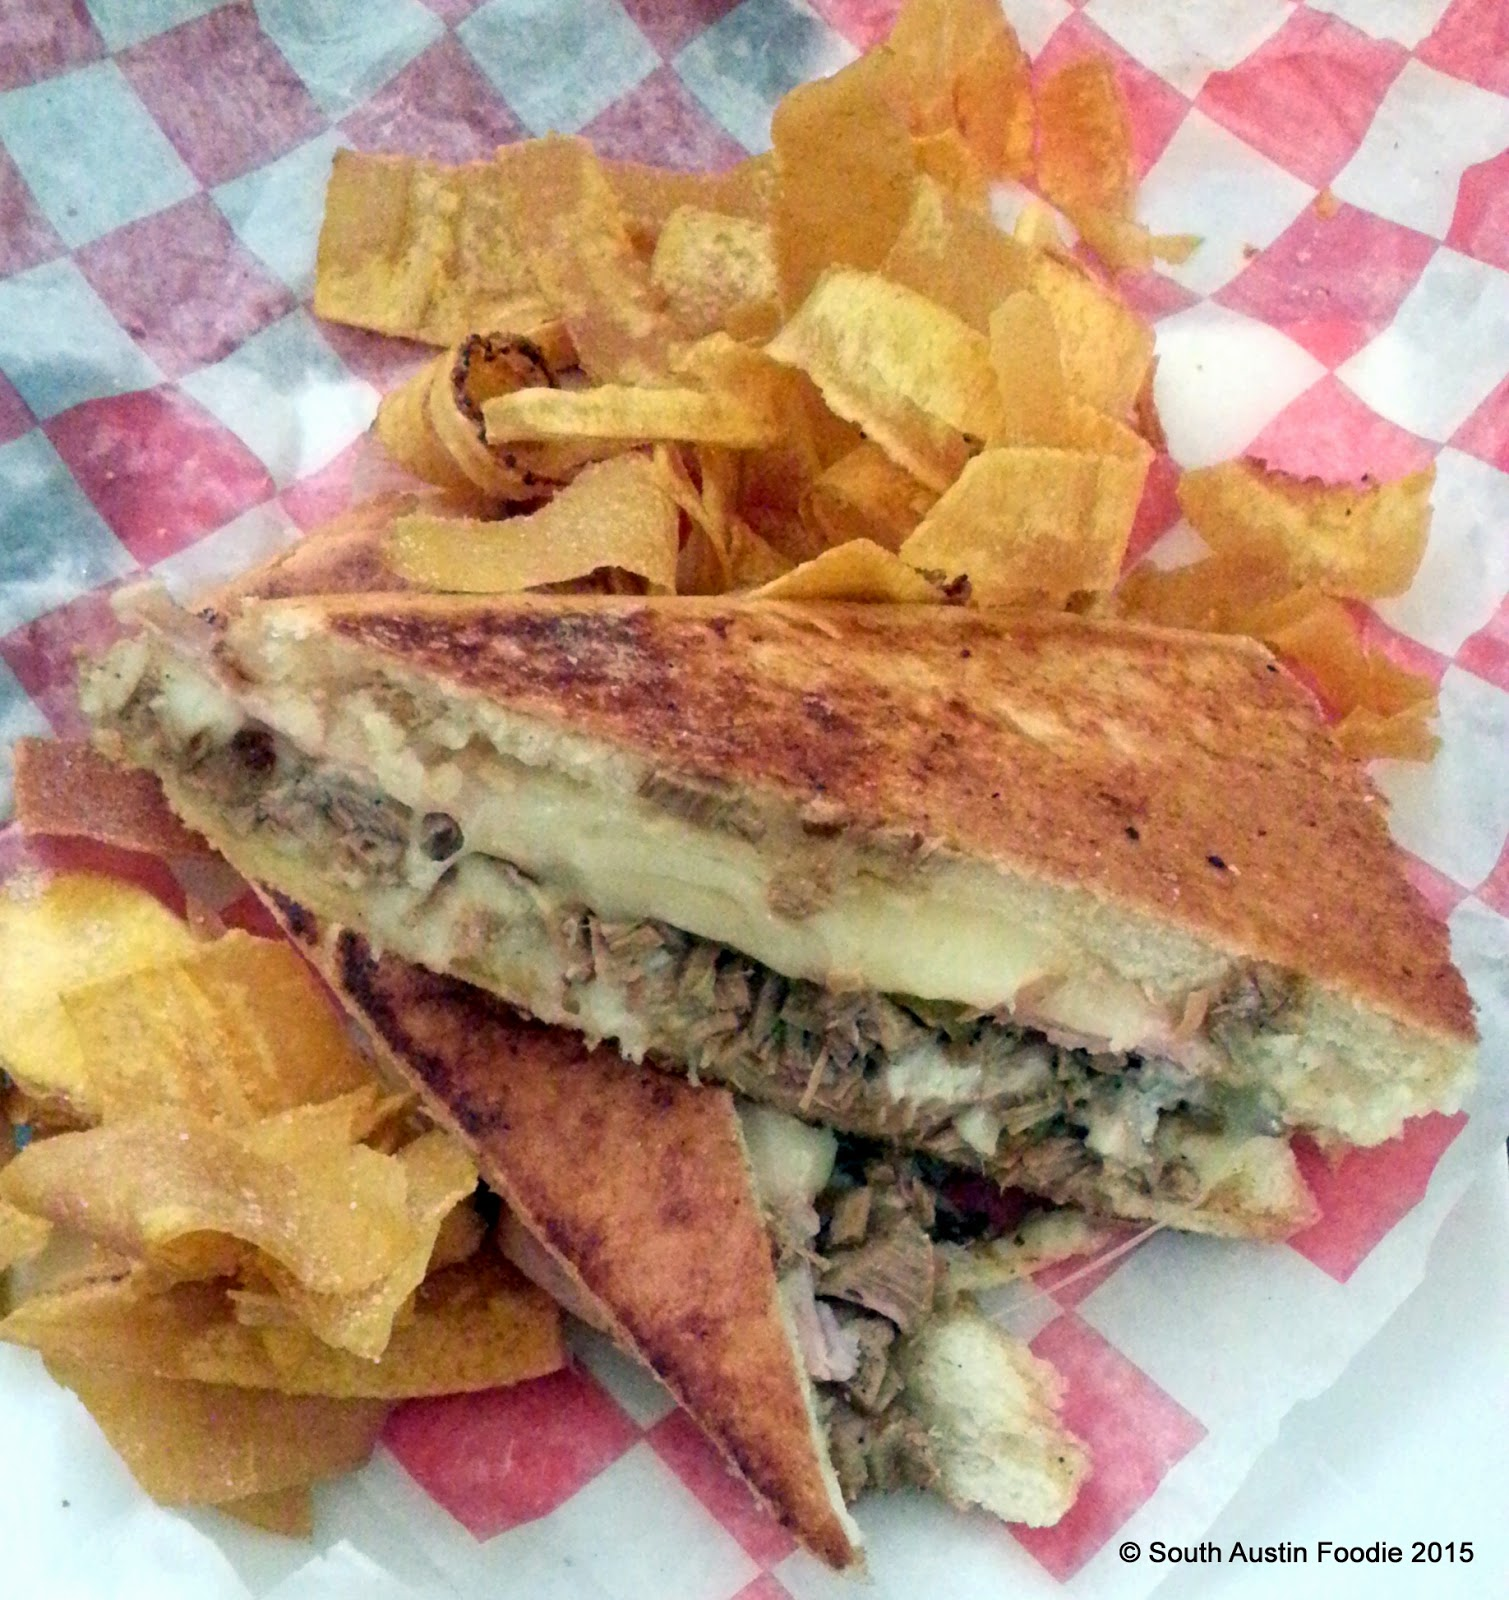 Texas Cuban sandwich